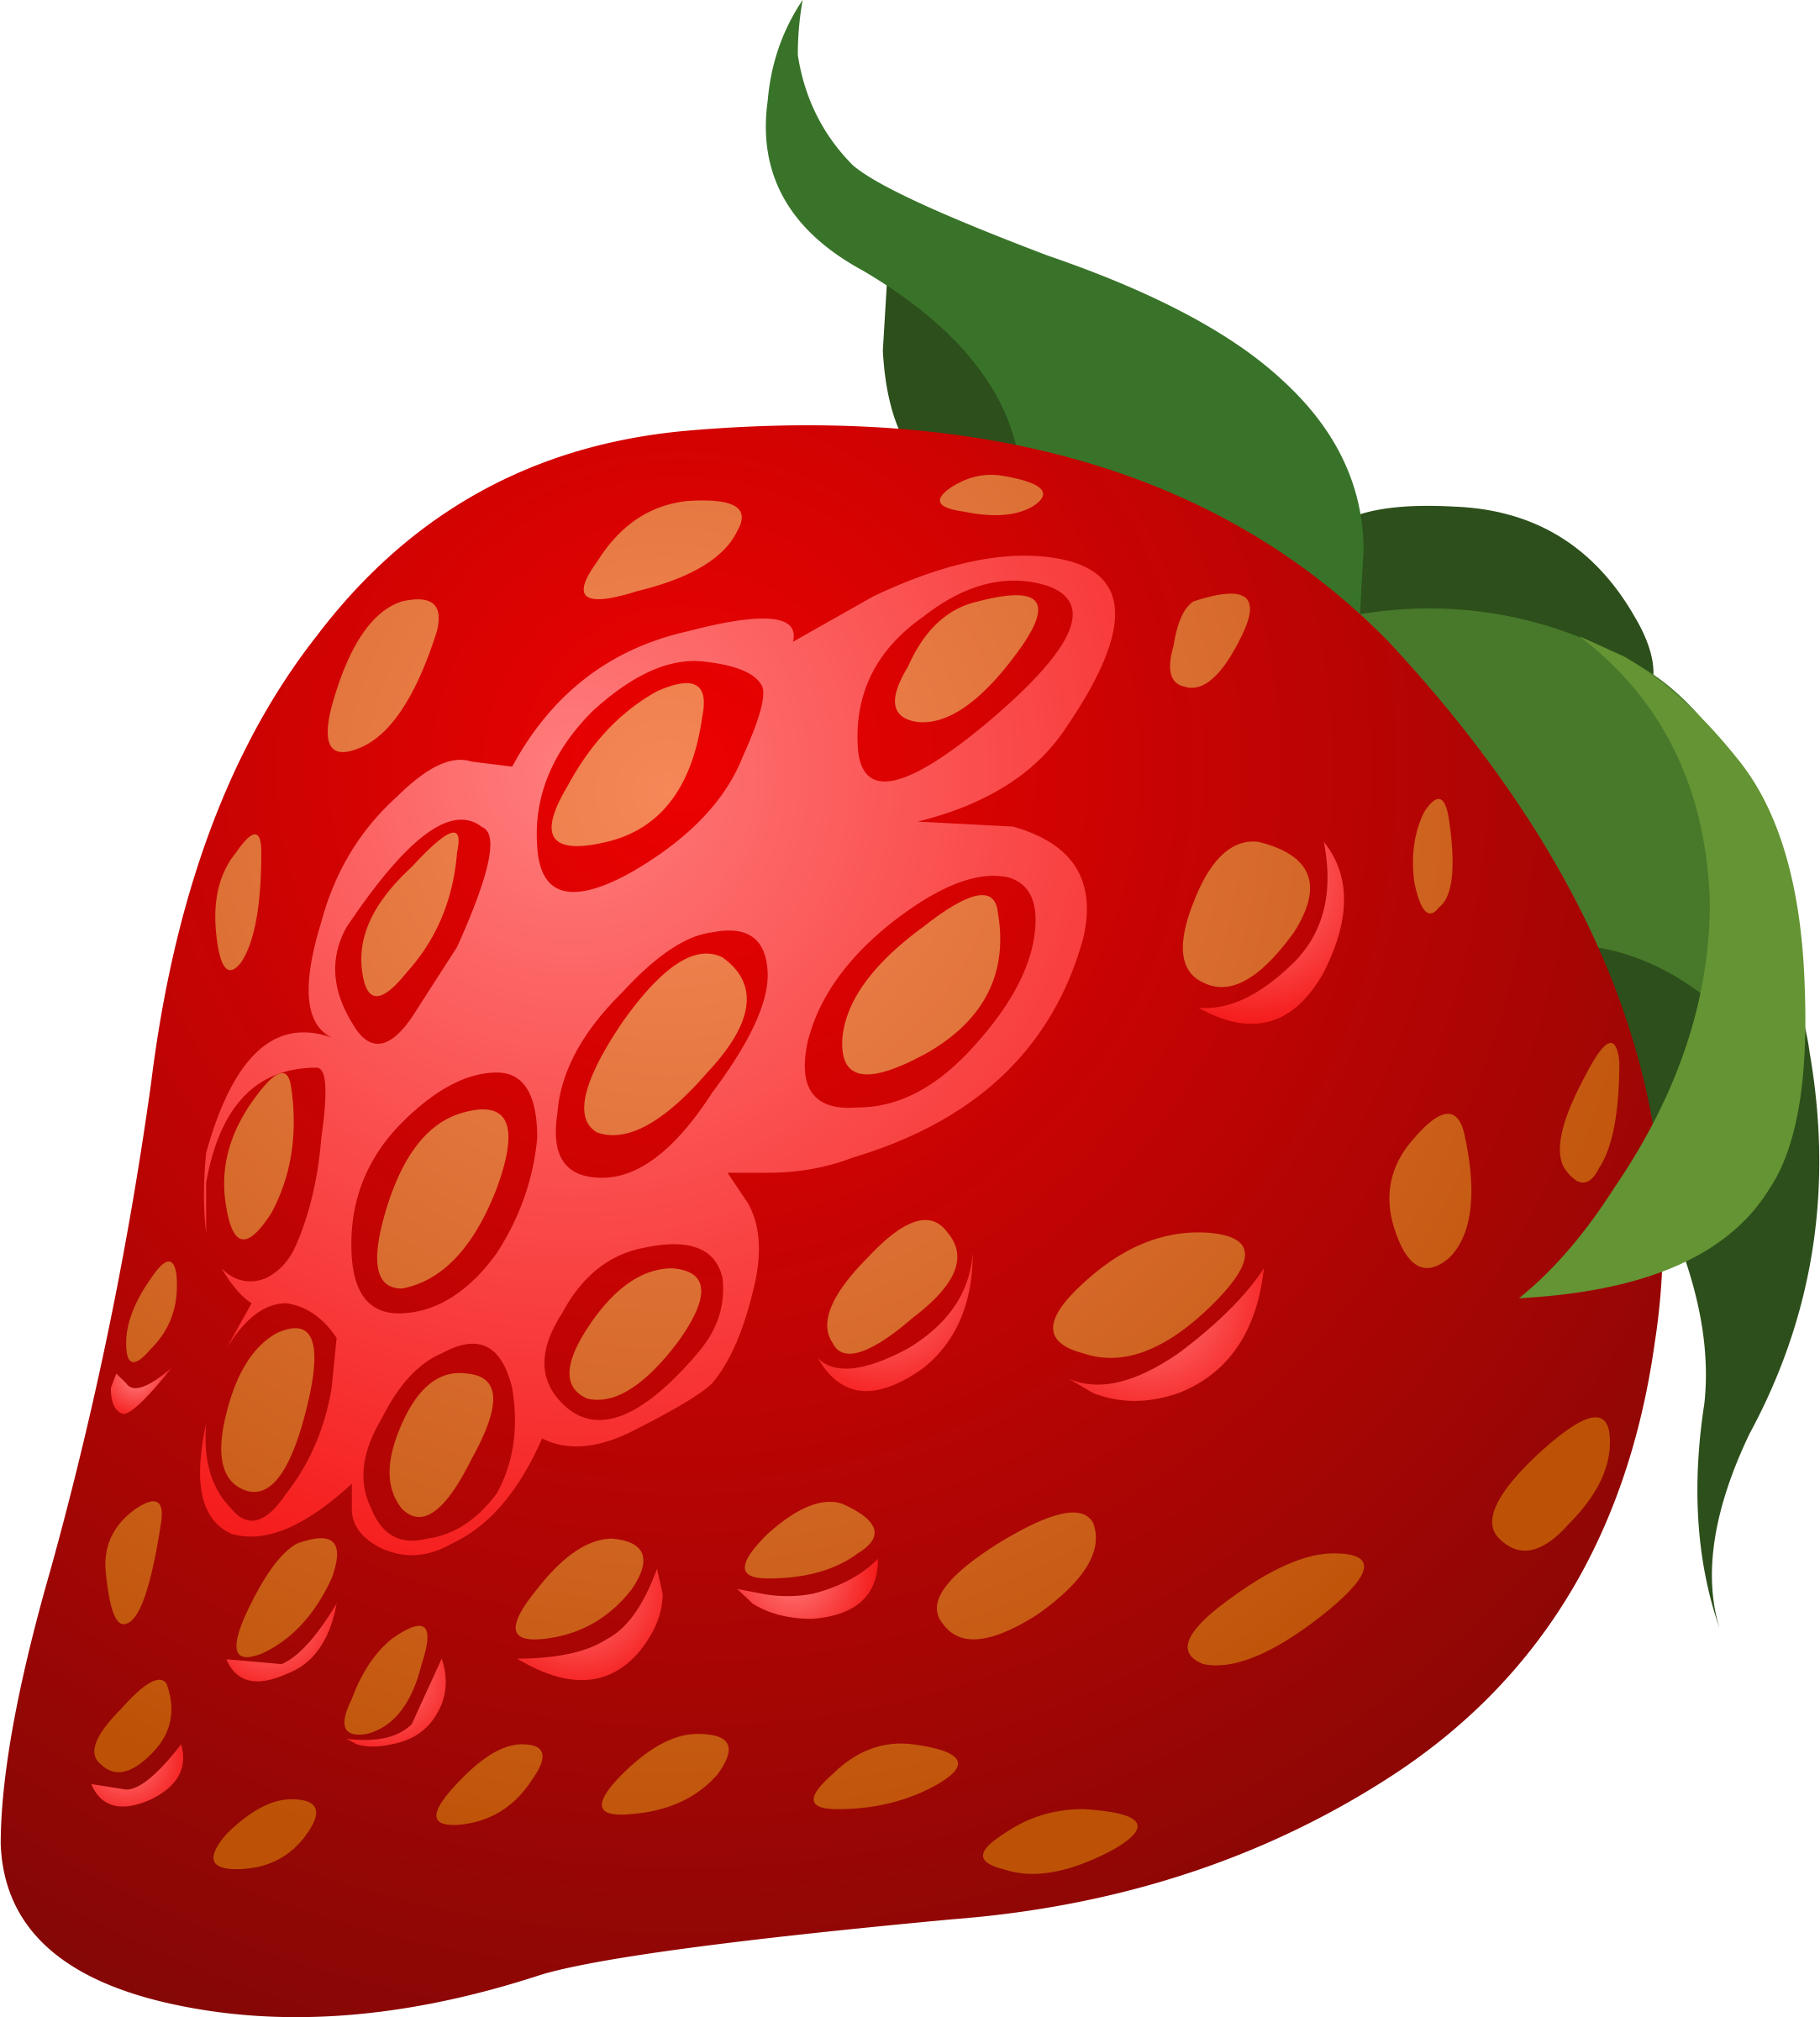 Glitch clipart transparent Strawberry about @glitch clipart @glitch